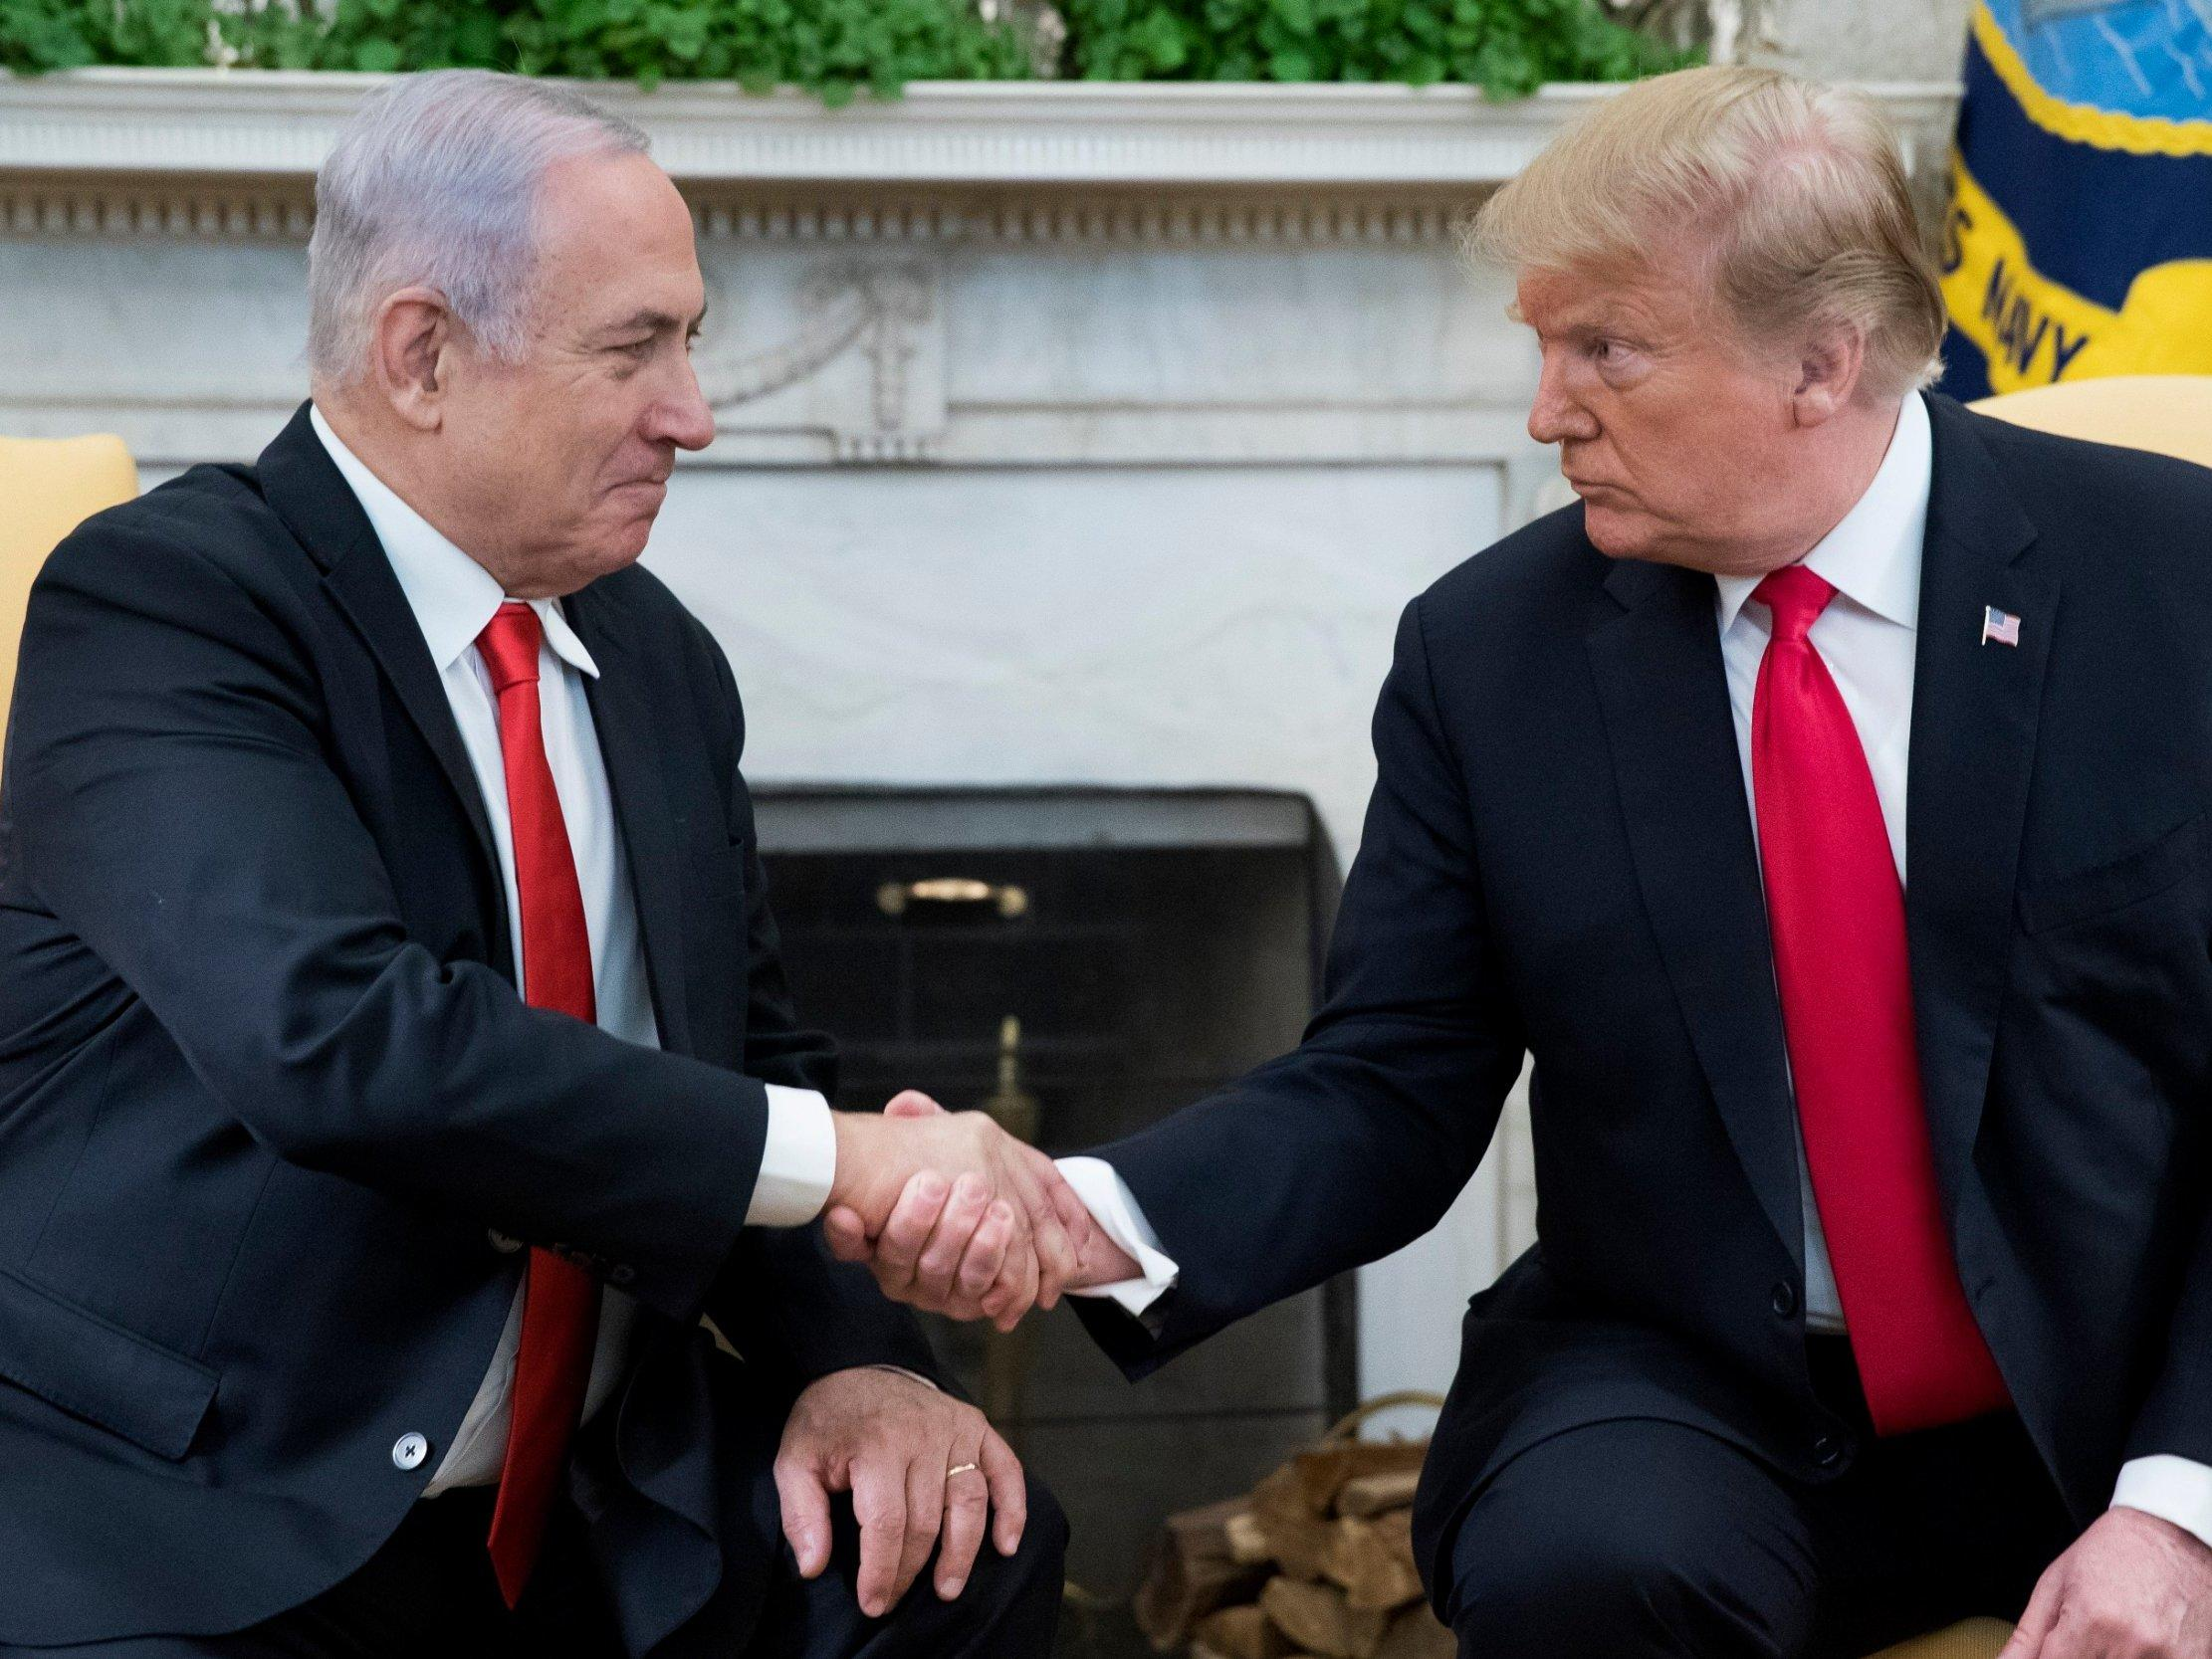 Netanyahu jokes with Trump about corruption probe: 'I hope they don't open an investigation on us'